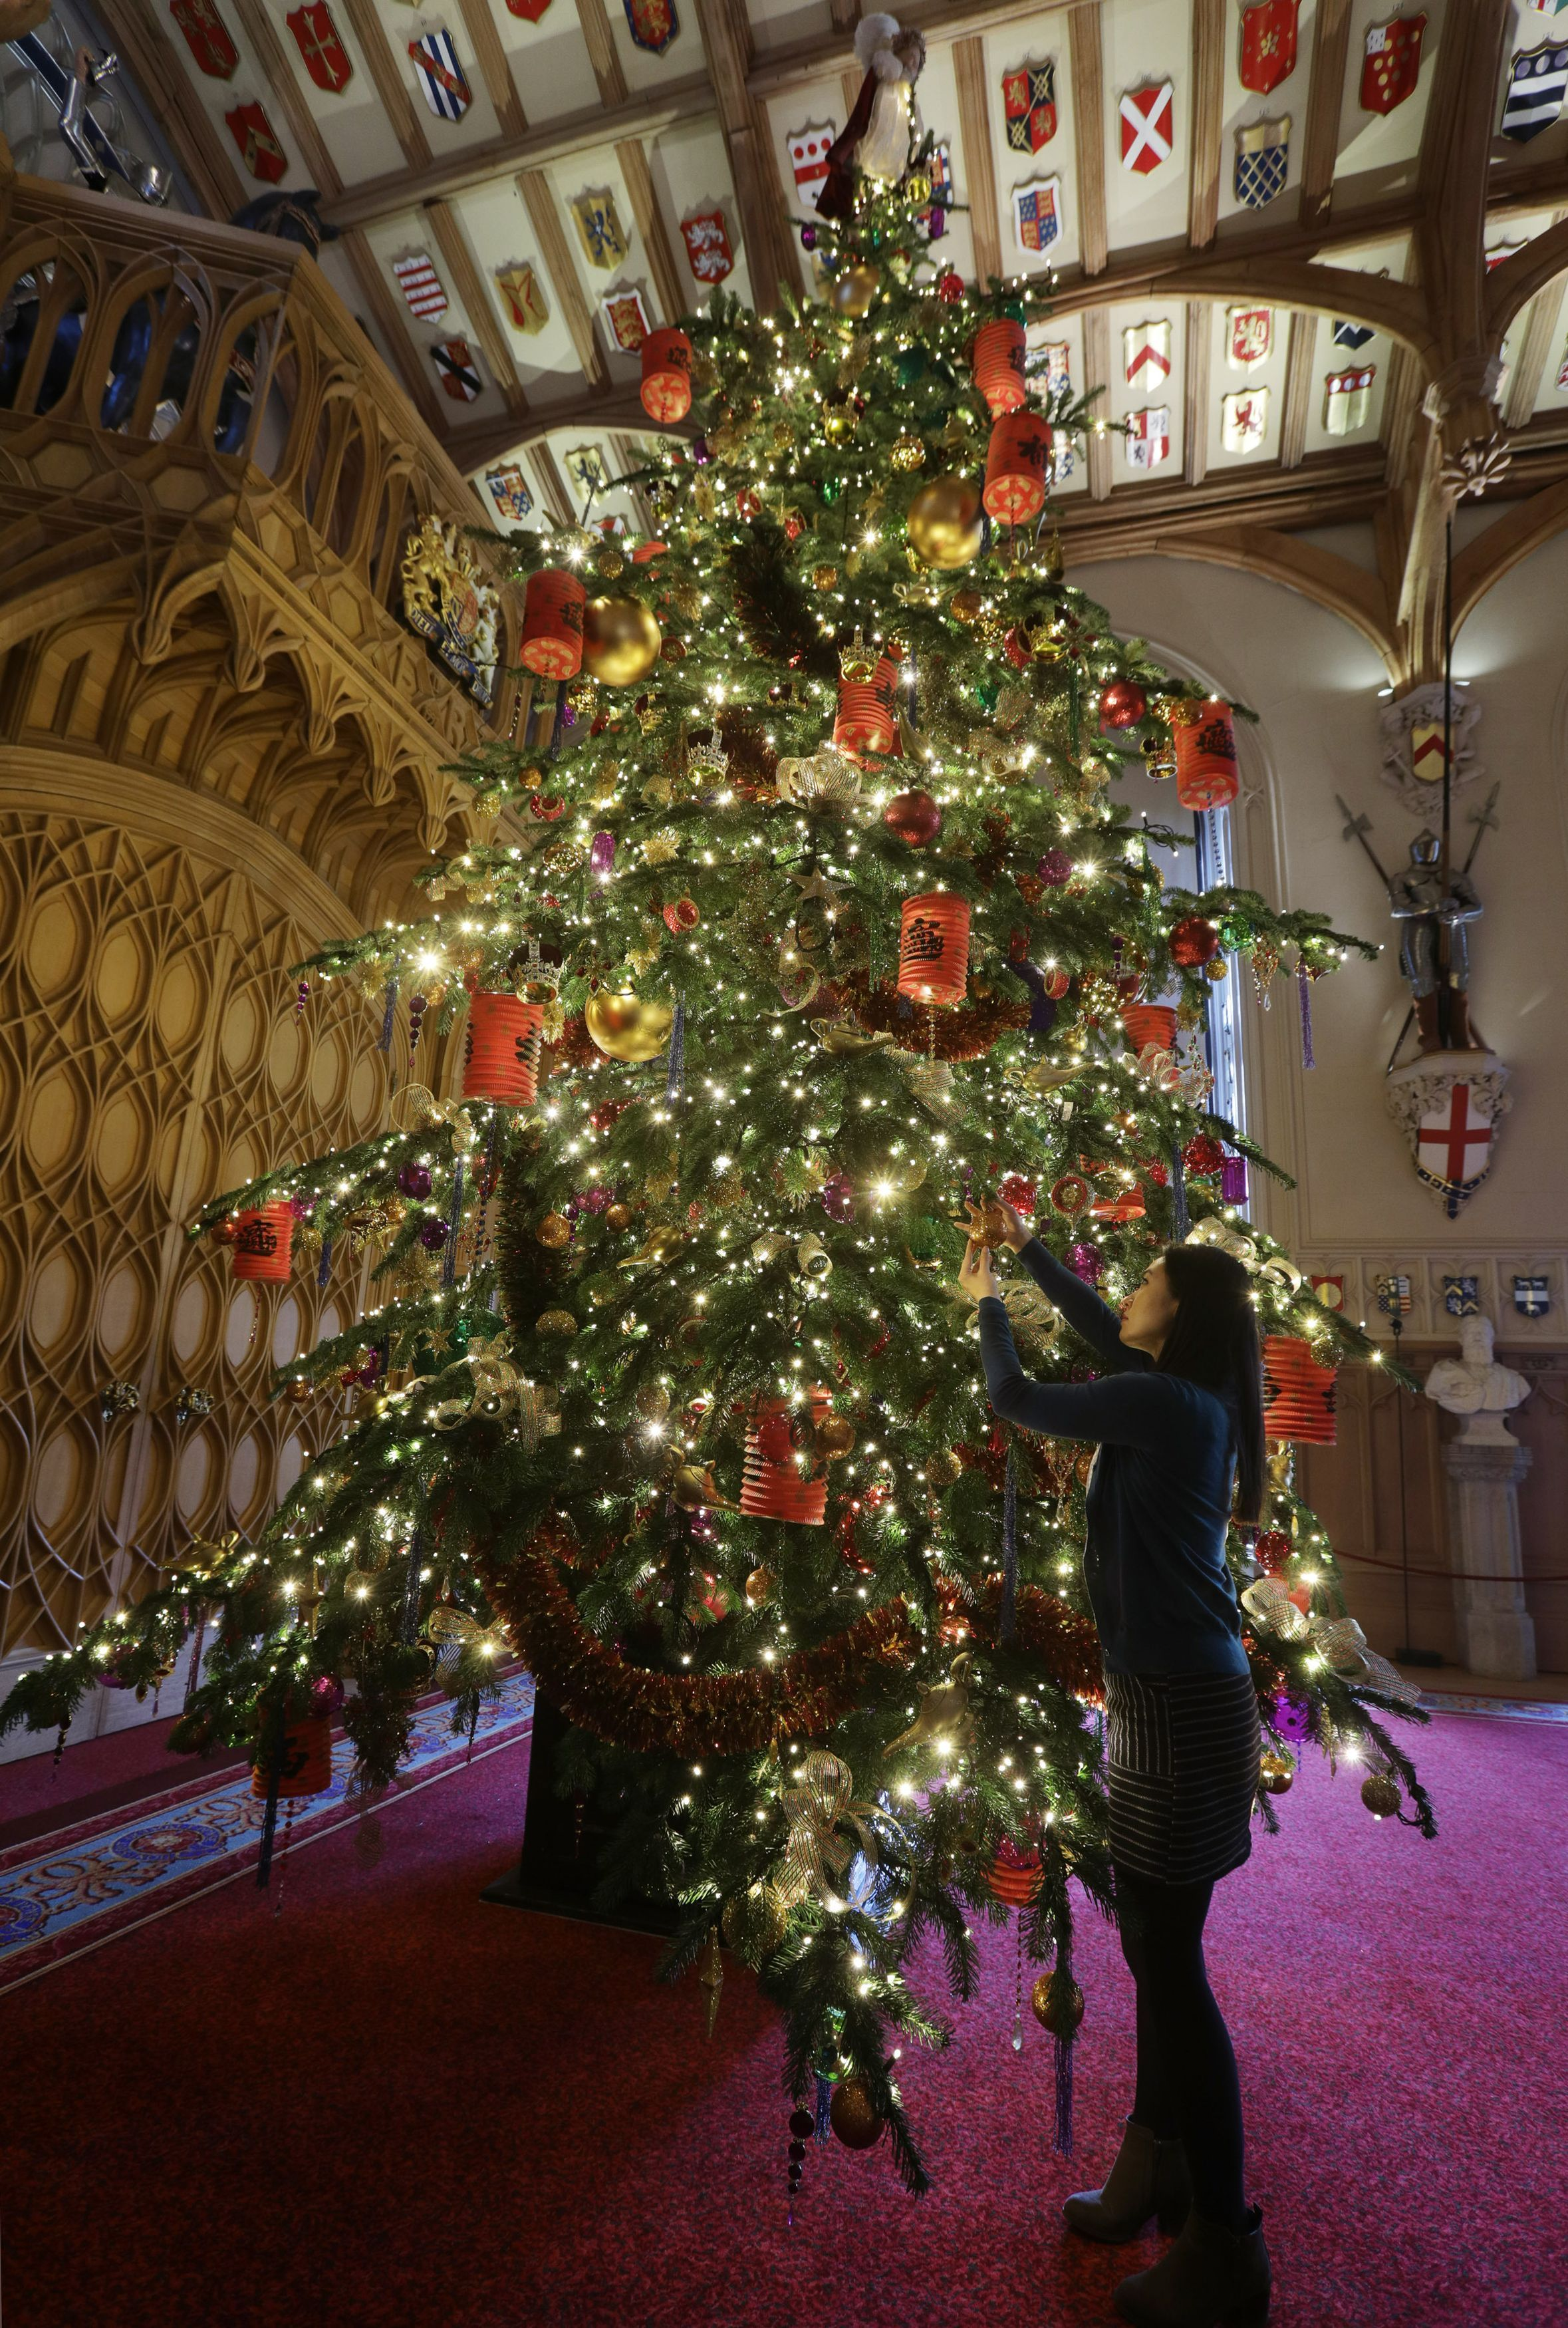 A Royal Collection Trust staff member puts the finishing touches to a 20ft Nordmann fir tree in St George's Hall, as part of Christmas decorations being put up at Windsor Castle, Berkshire. (Photo by Yui Mok/PA Images via Getty Images)